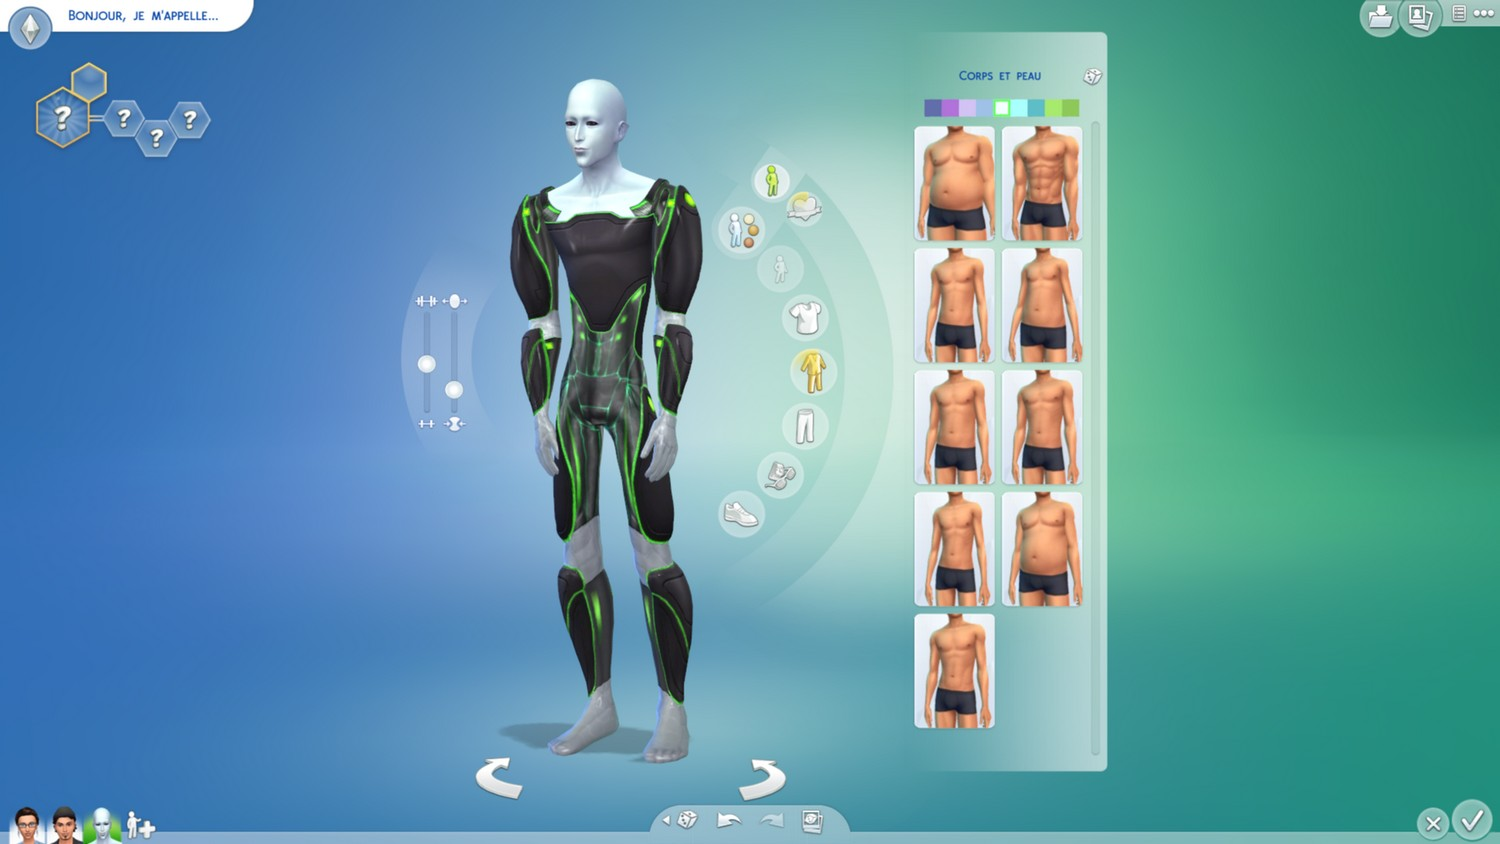 The Sims 4 - Installation des packs d'extension Les Sims 4